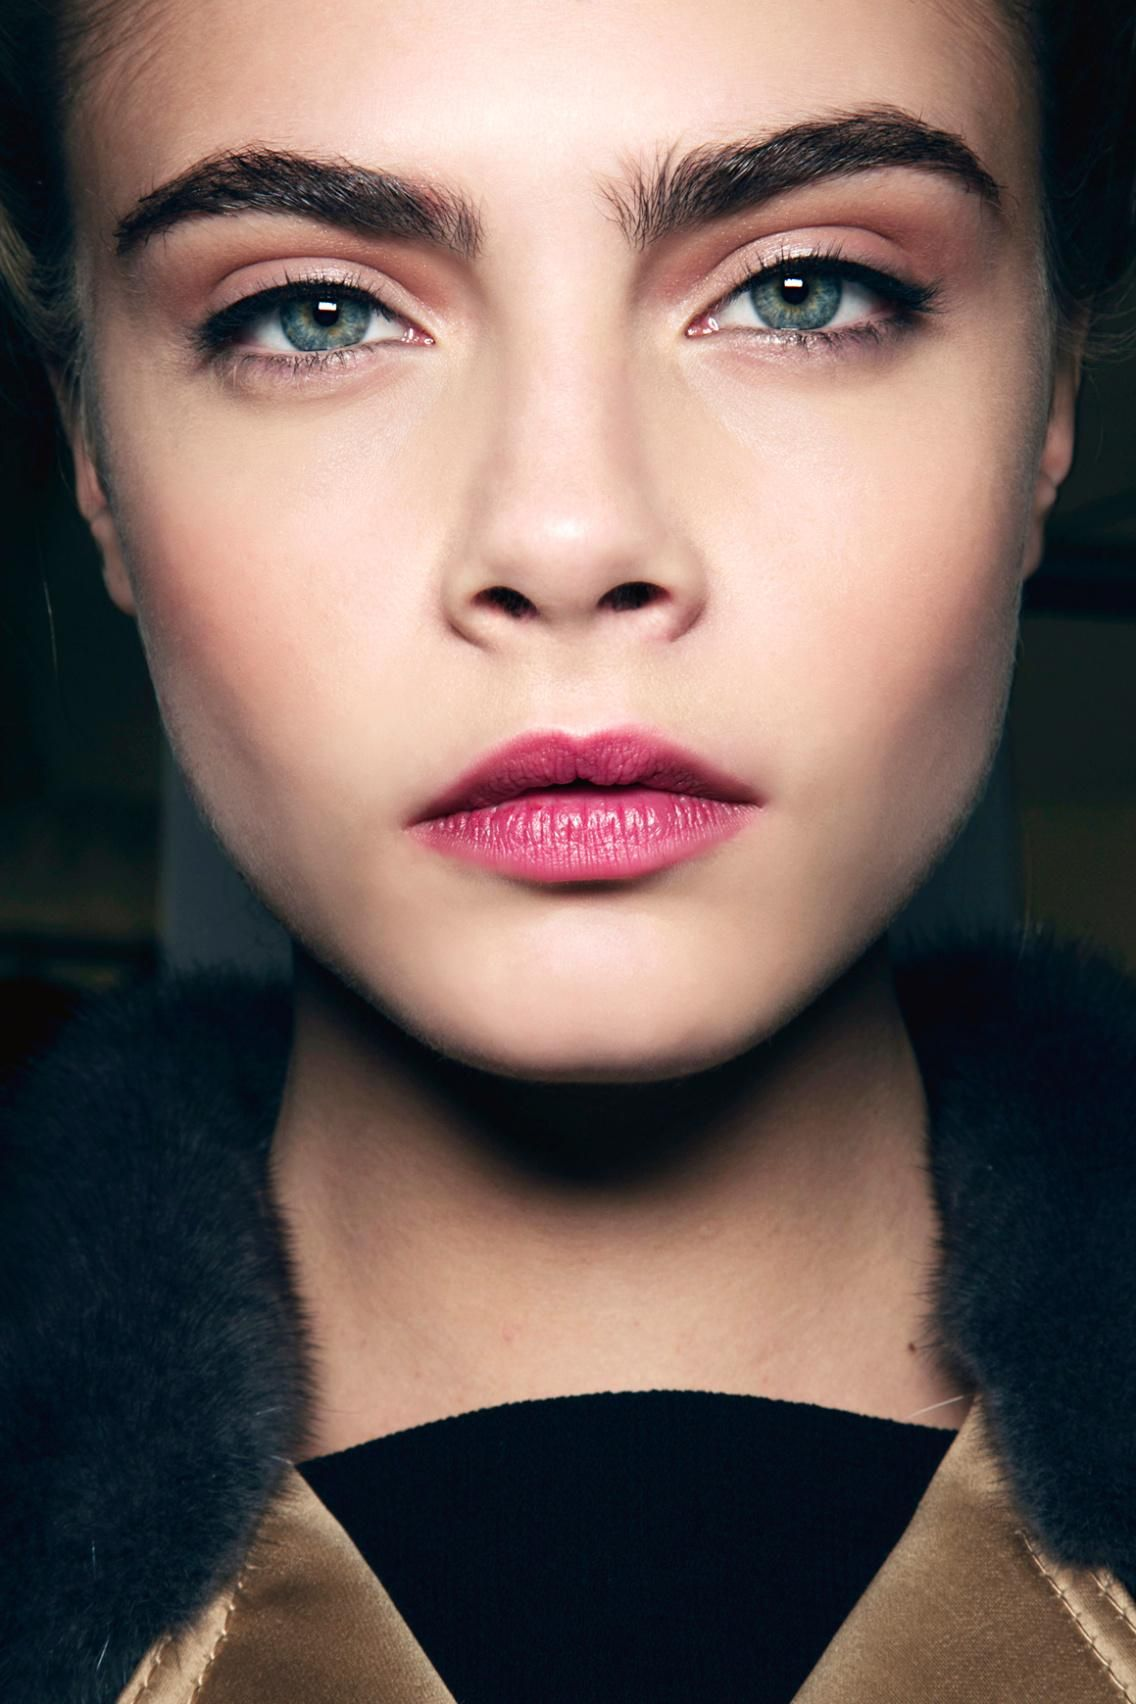 Eyebrows 101 Expert Tips on Growing, Filling In and